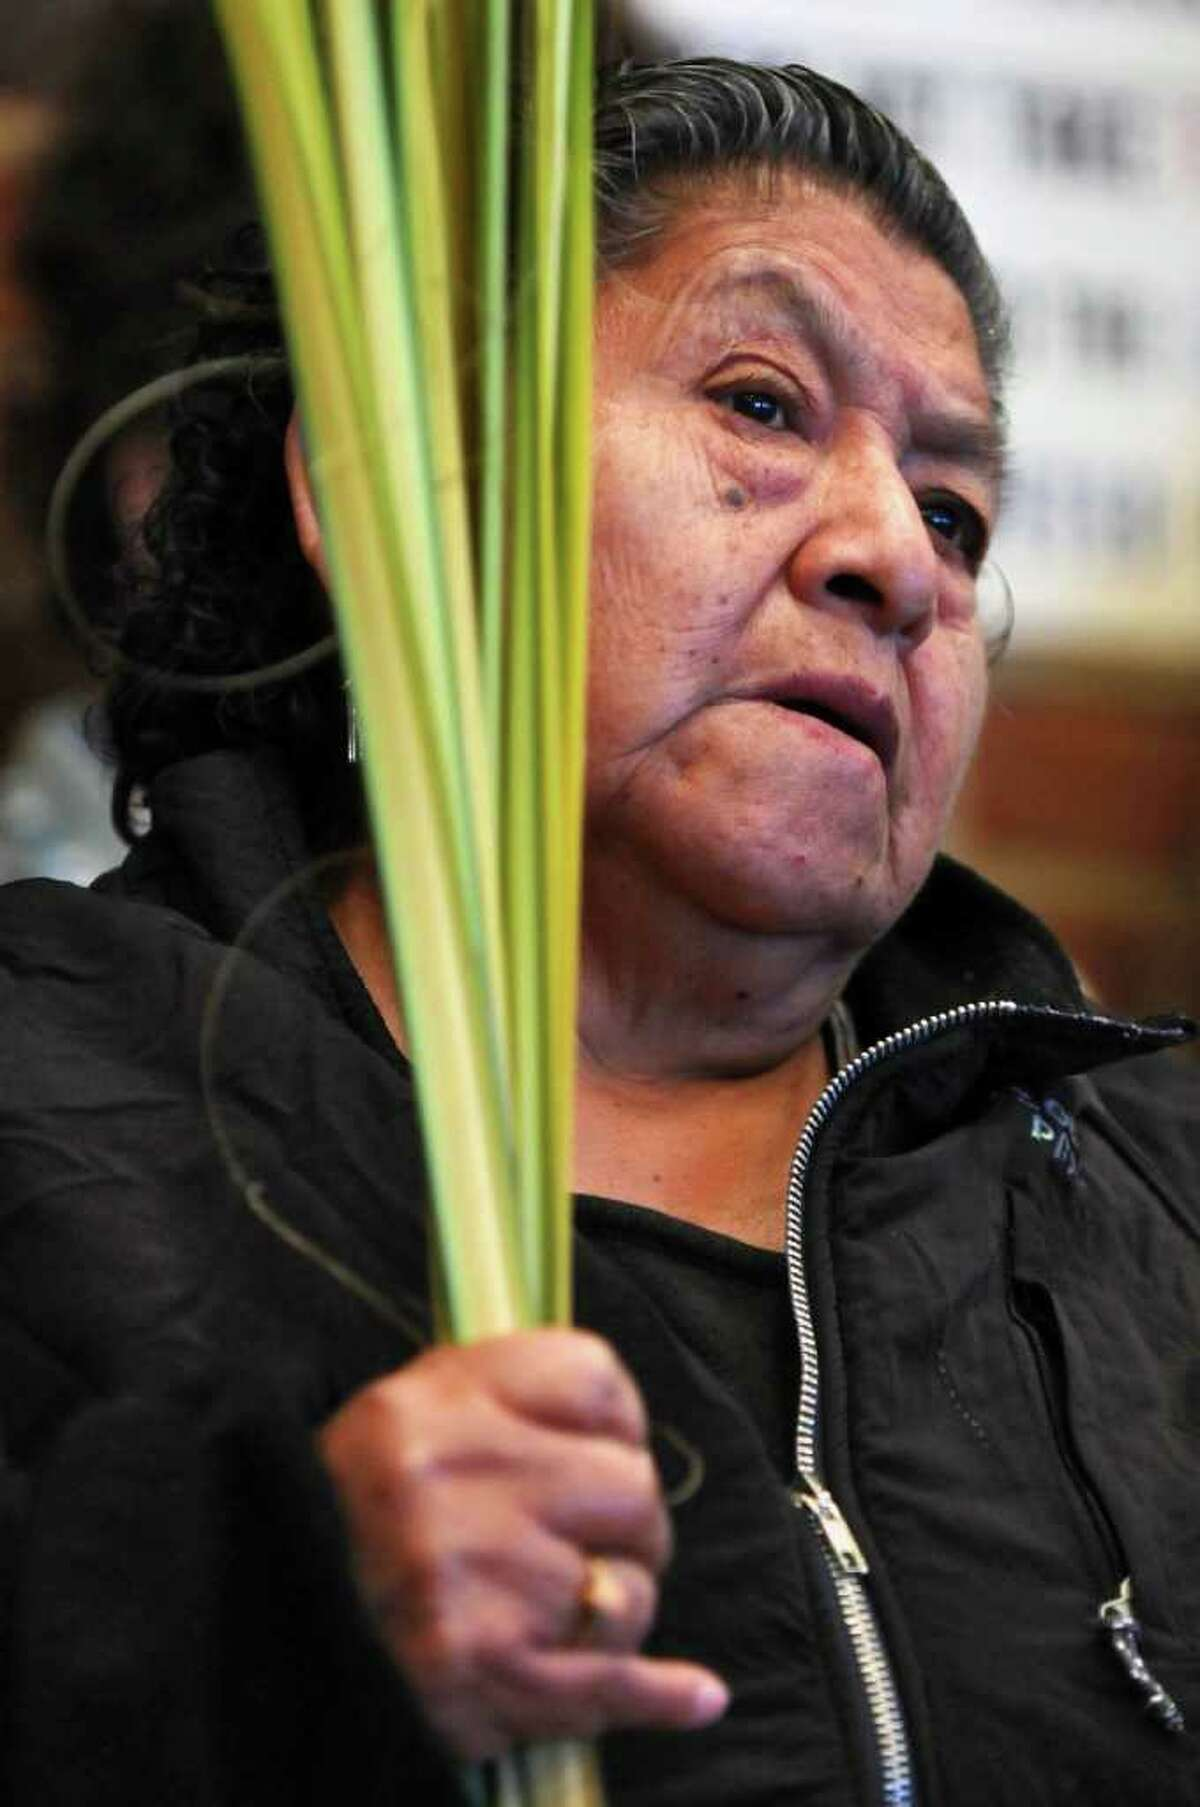 Maria Quispen, of Albany, of the Shrine Church of Our Lady of the Americas, holds palms during a bilingual palm blessing ceremony with members of St. John's Evangelical Lutheran Church on Palm Sunday, April 17, 2011, in Albany, NY. Members of Todos Los Hijos de Dios, of Amsterdam, were also there. ( Philip Kamrass / Times Union )